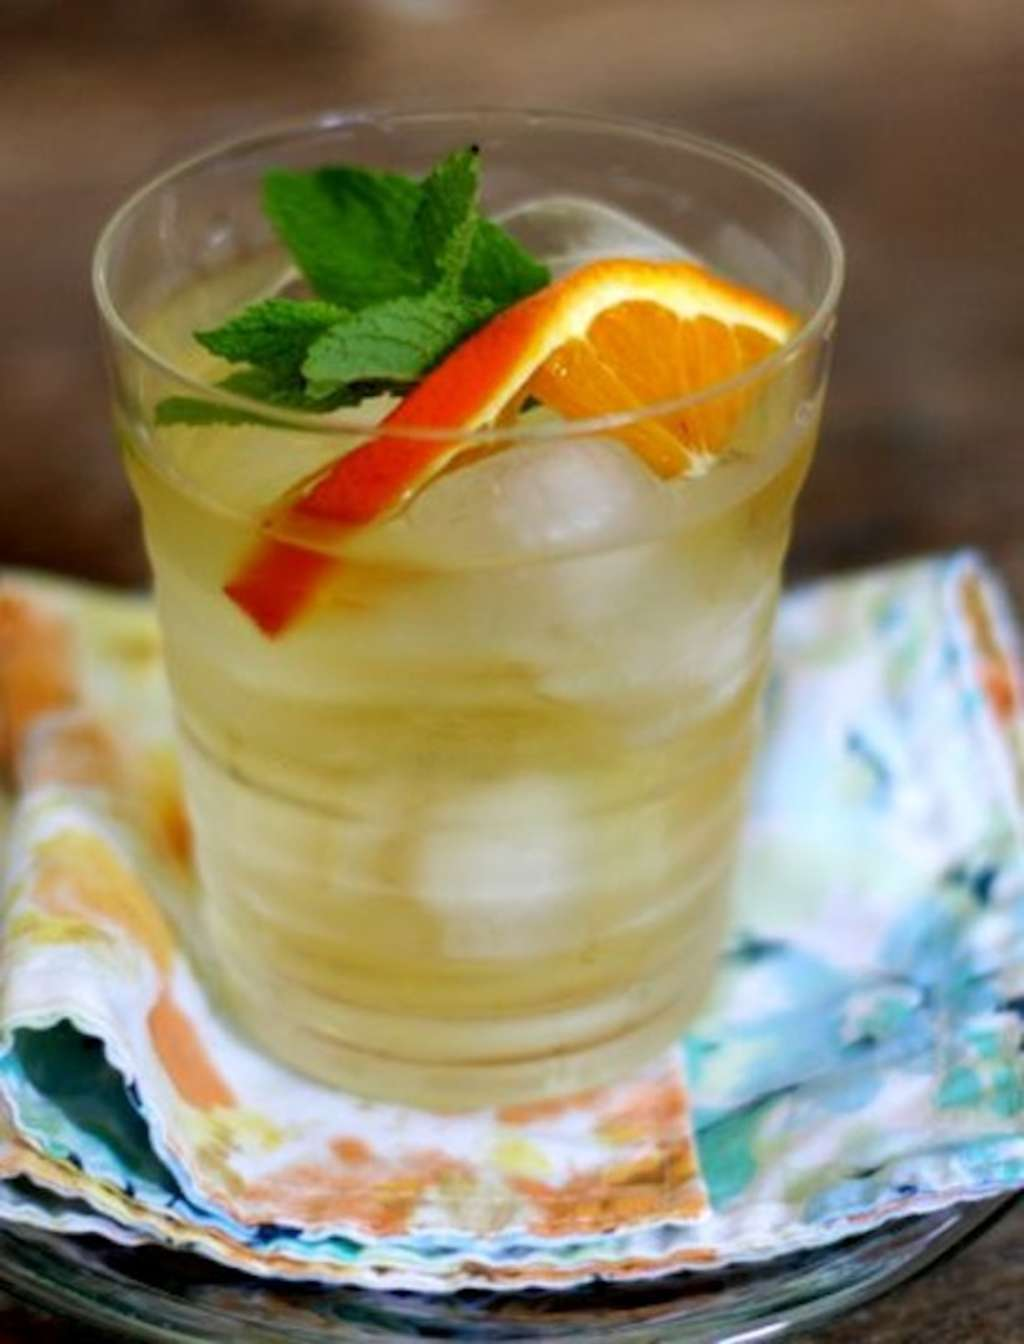 Springtime Refresher: Dr. Oz's Green Tea, Tangerine and Mint Tonic